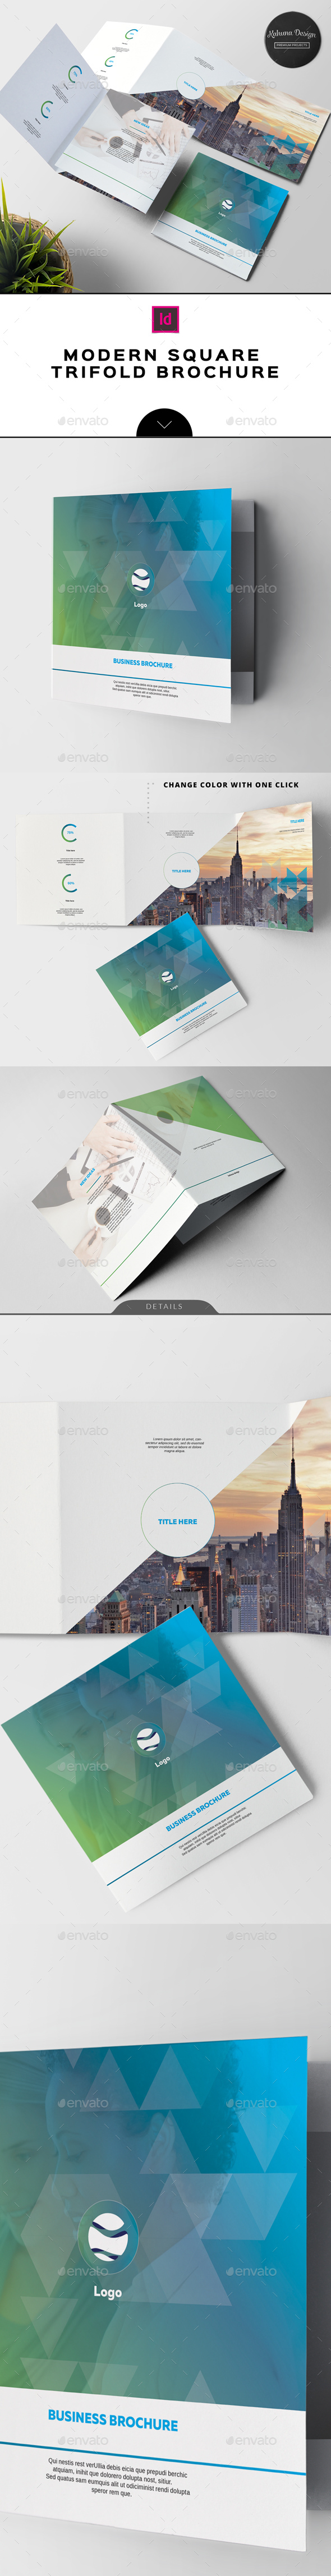 Modern Square Trifold Brochure - Corporate Brochures